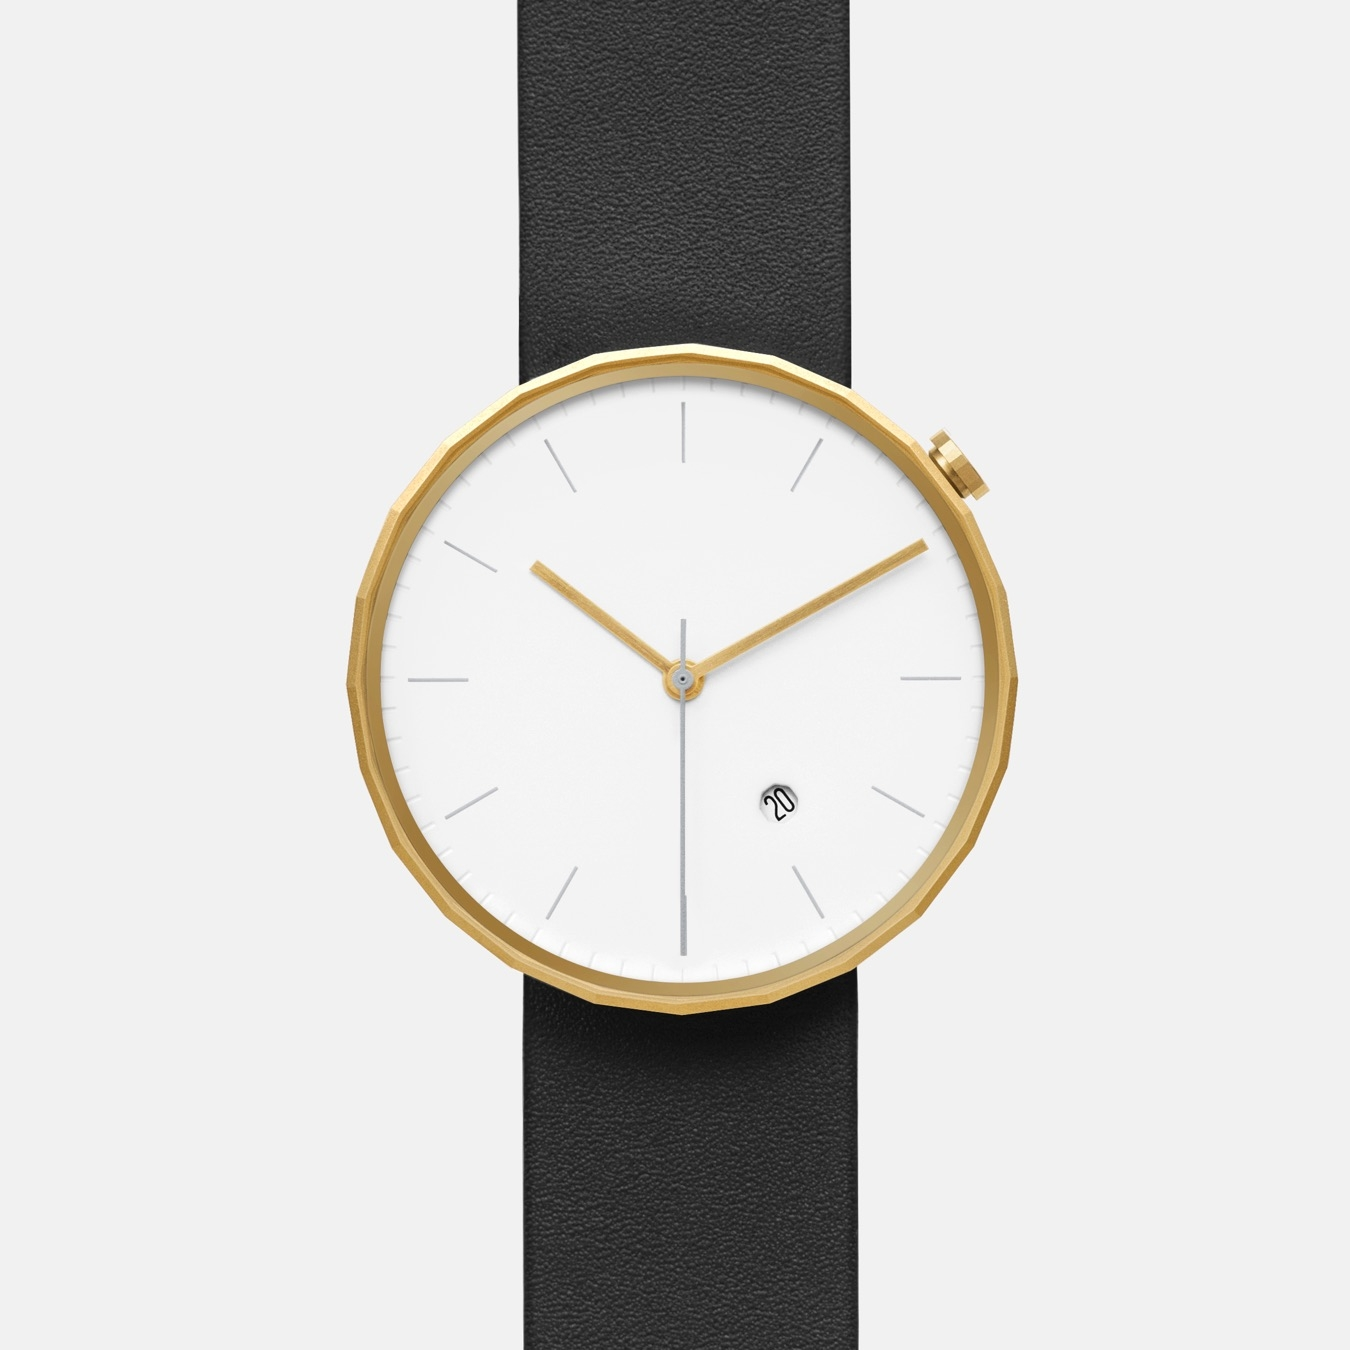 Polygon Watch 02 in Gold with Black Strap